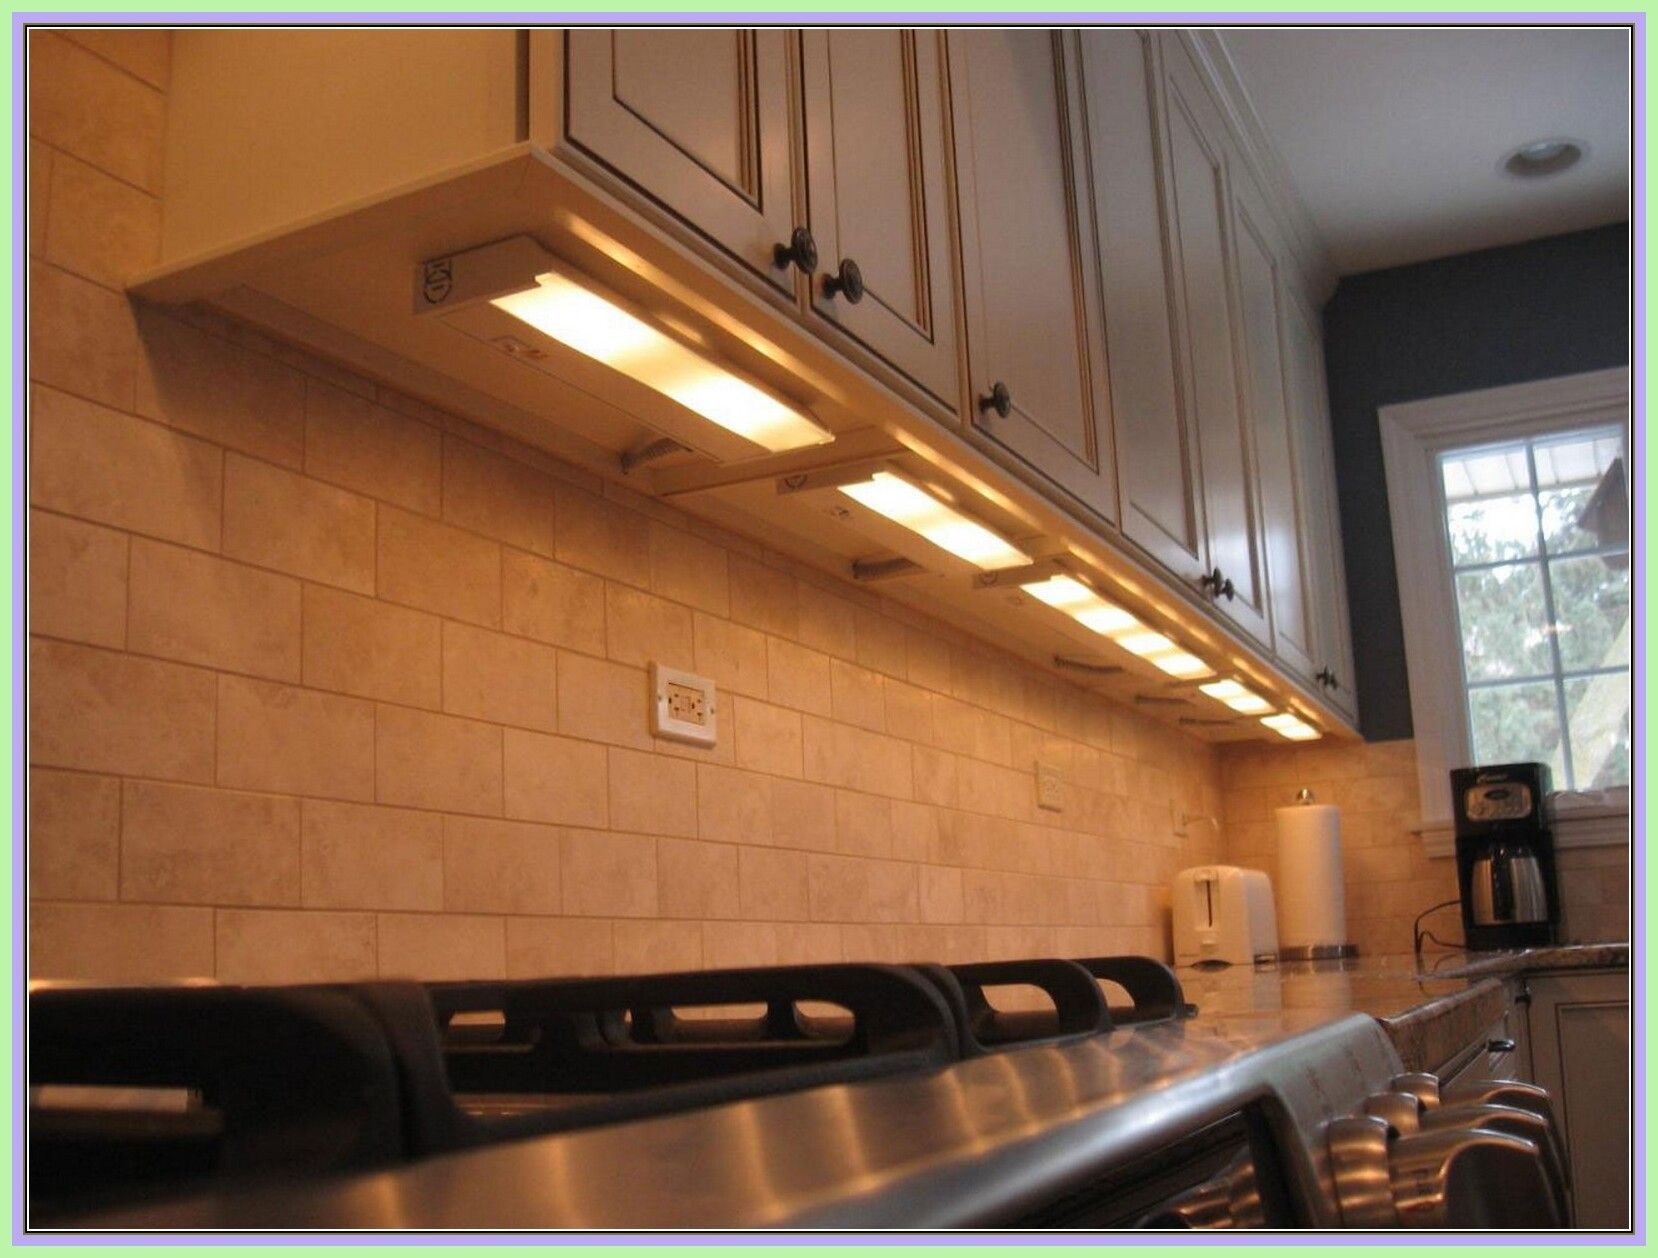 99 Reference Of Kitchen Lighting Under Cabinet Led Cabinet Kitchen Led Lighting In 2020 Light Kitchen Cabinets Under Cabinet Lighting Kitchen Under Cabinet Lighting